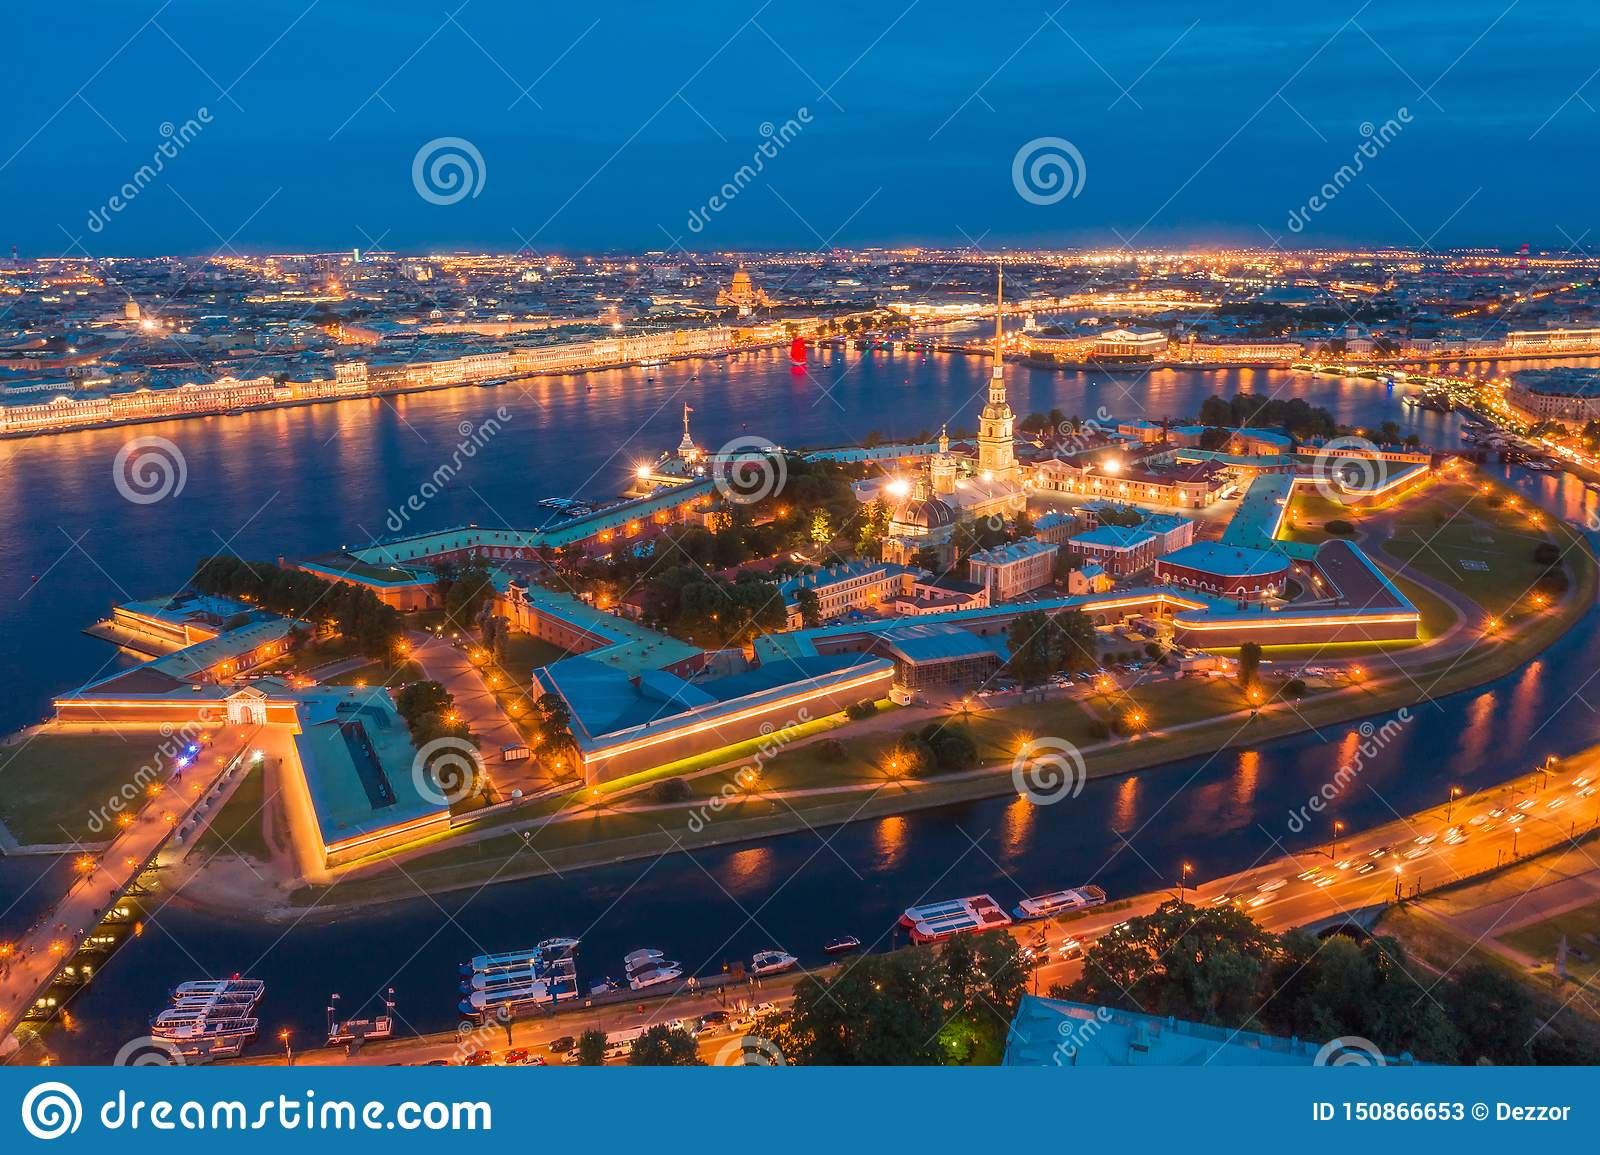 Night view of the Peter and Paul Fortress Hare Island and the city of St. Petersburg